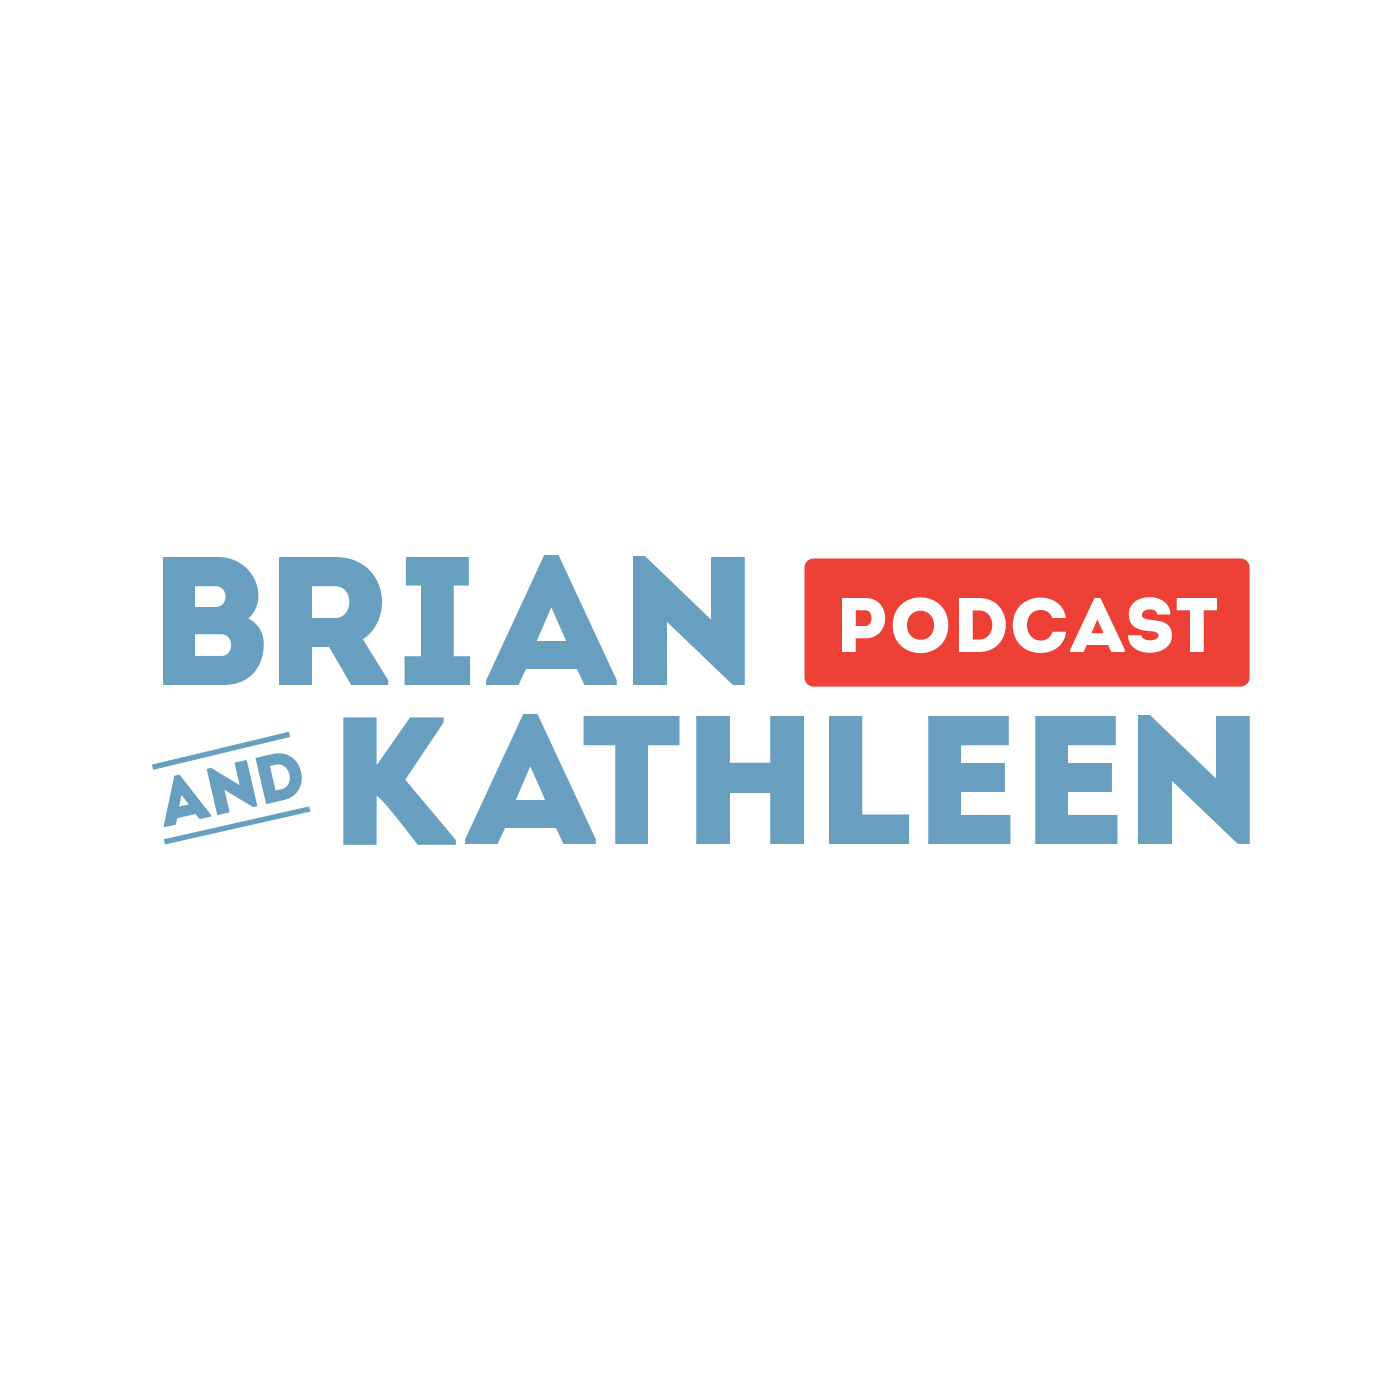 Brian and Kathleen Podcast